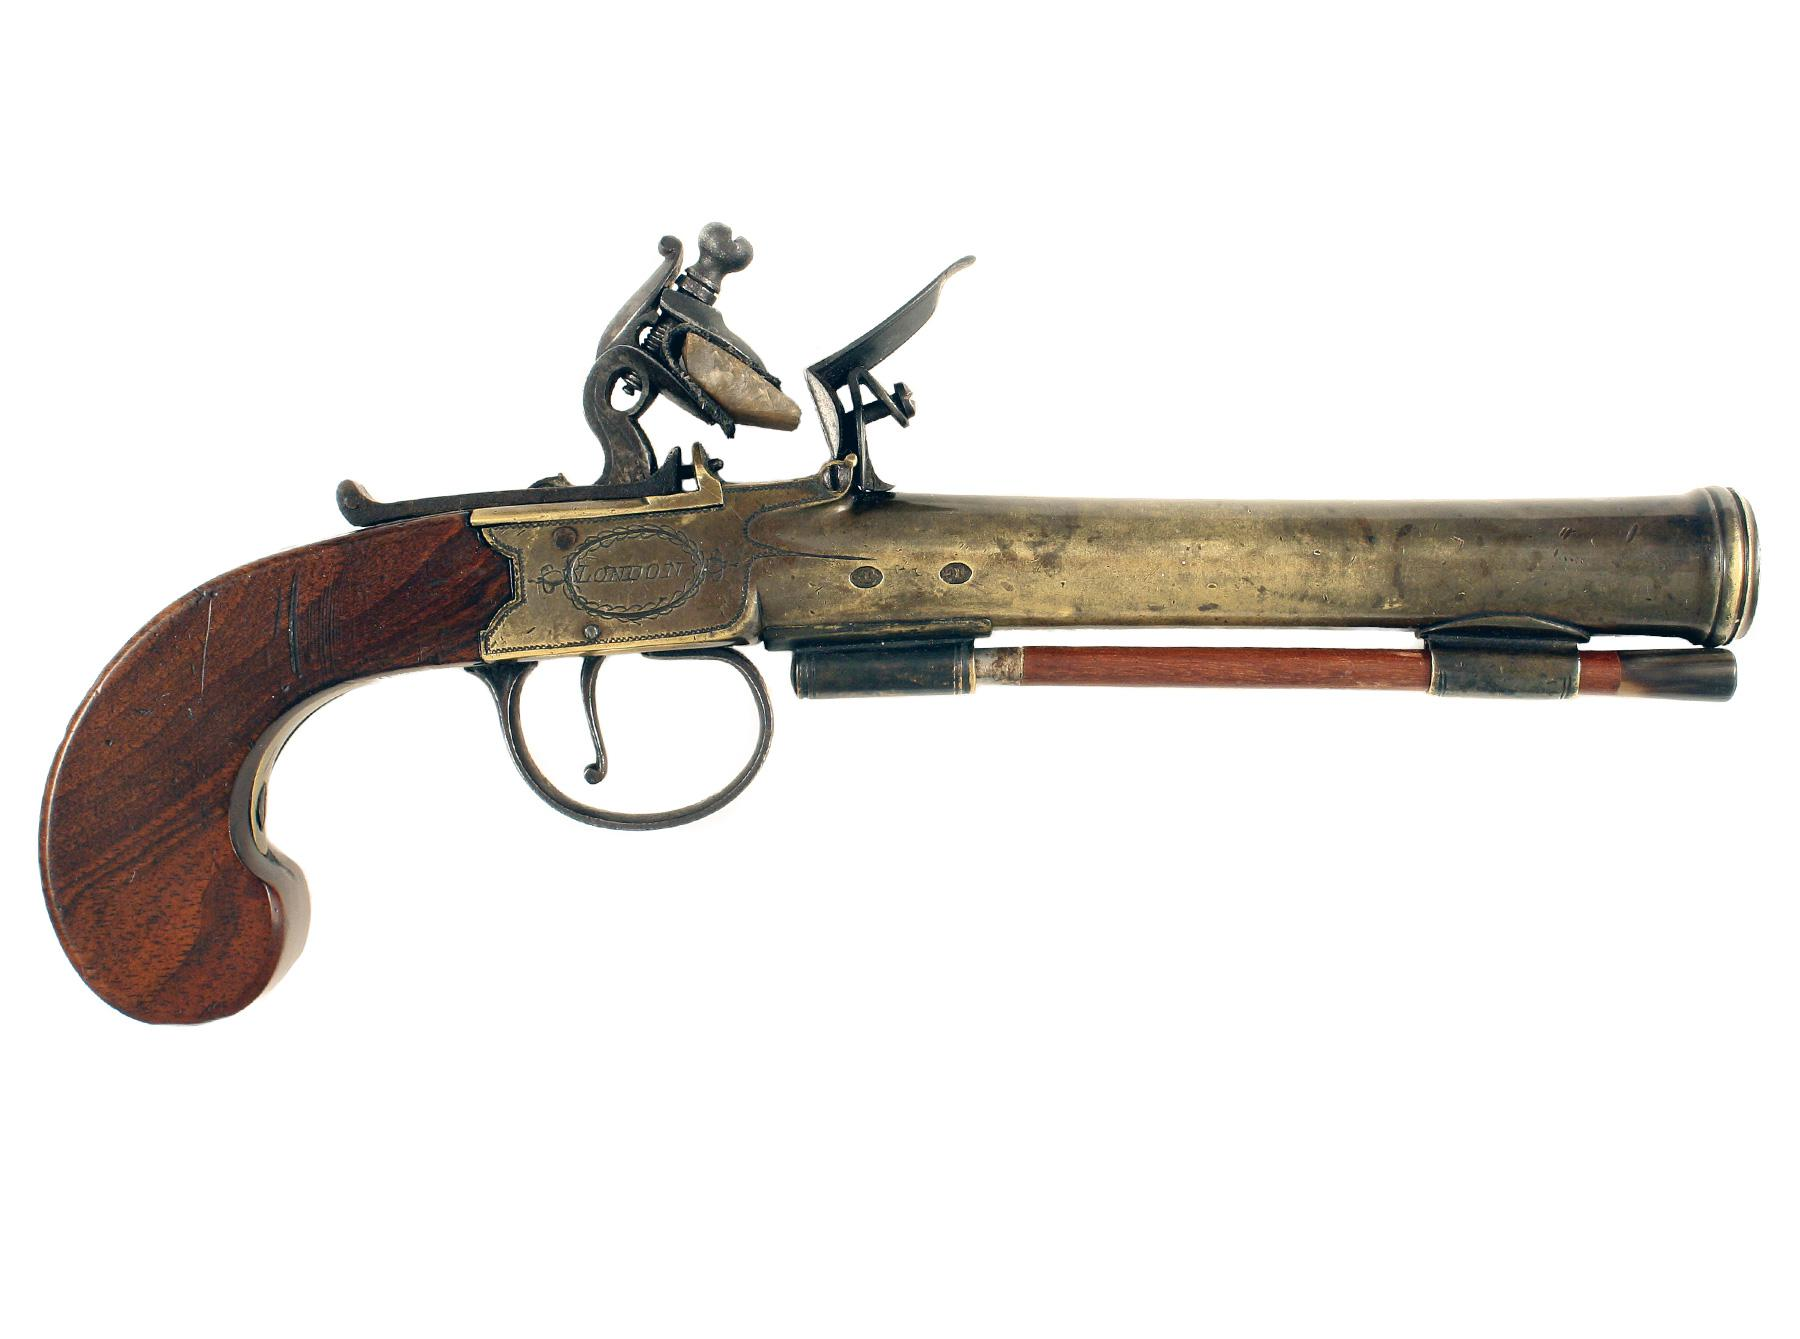 A Flintlock Blunderbuss Pistol by P. Bond